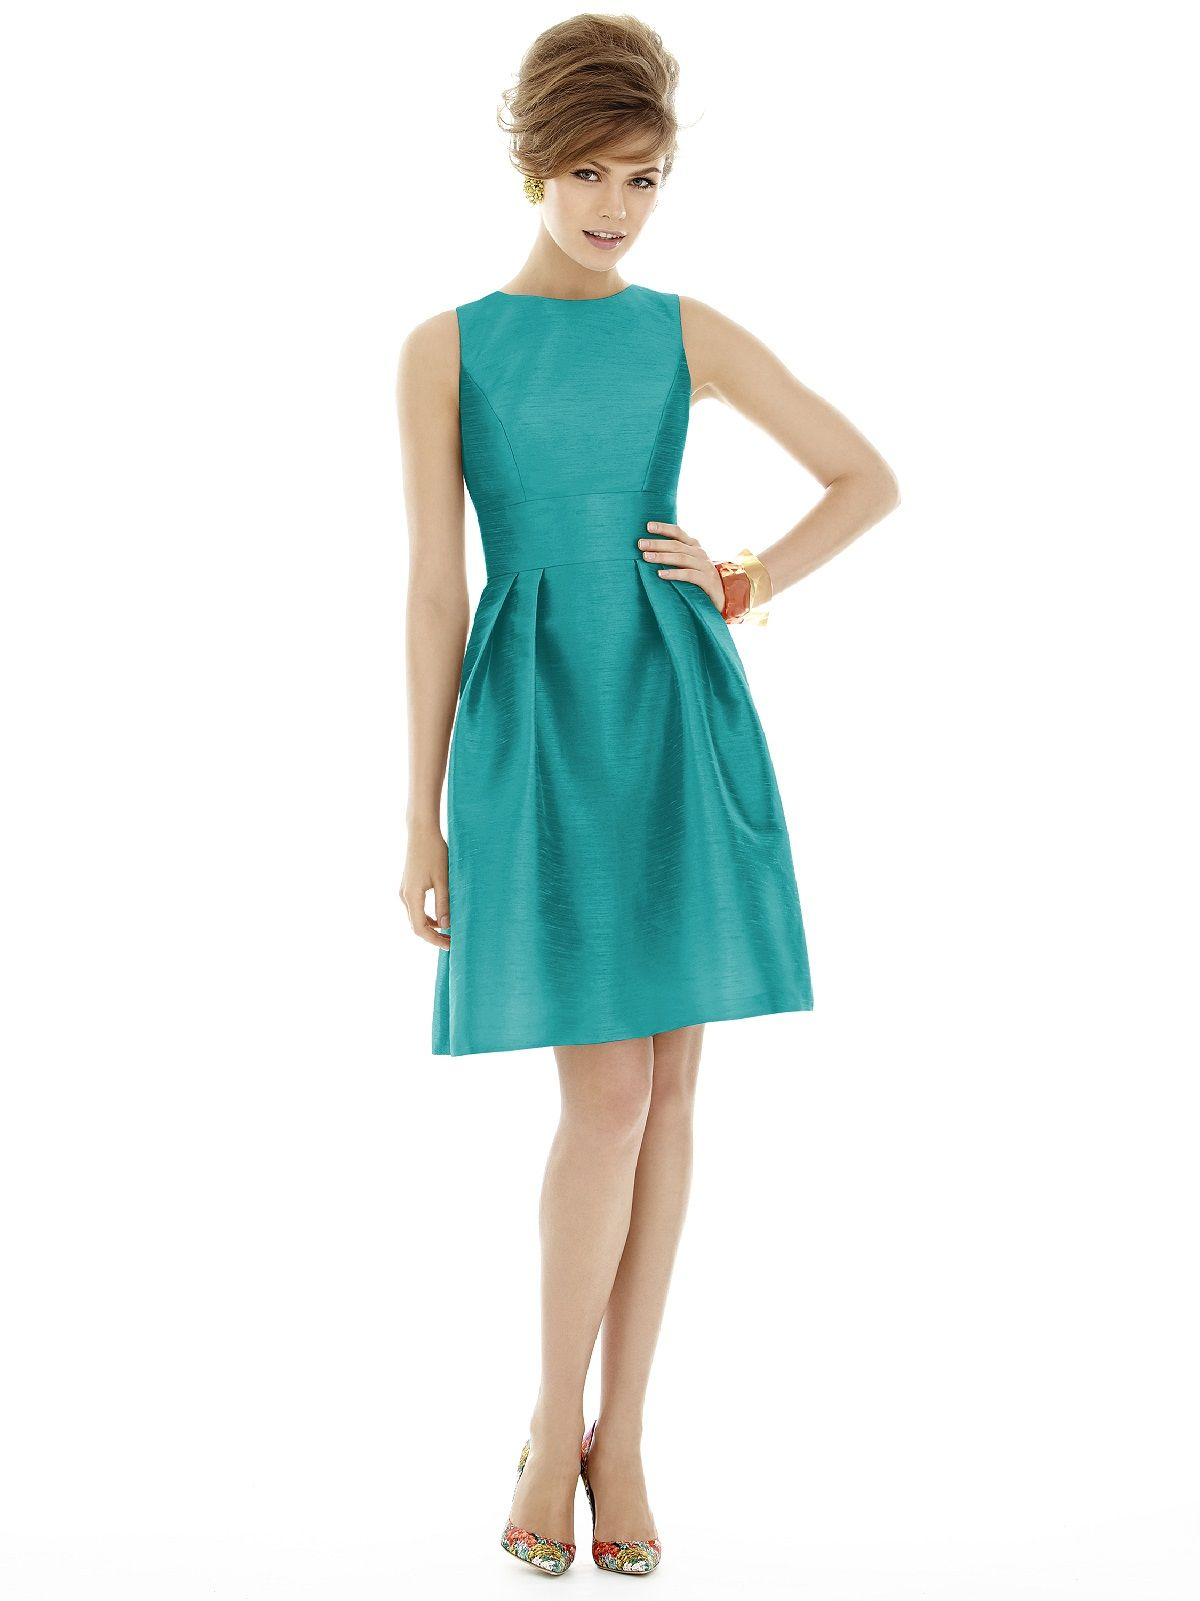 Alfred sung style d679 alfred sung alfred sung bridesmaid alfred sung quick delivery bridesmaid dress in turquoise ombrellifo Gallery